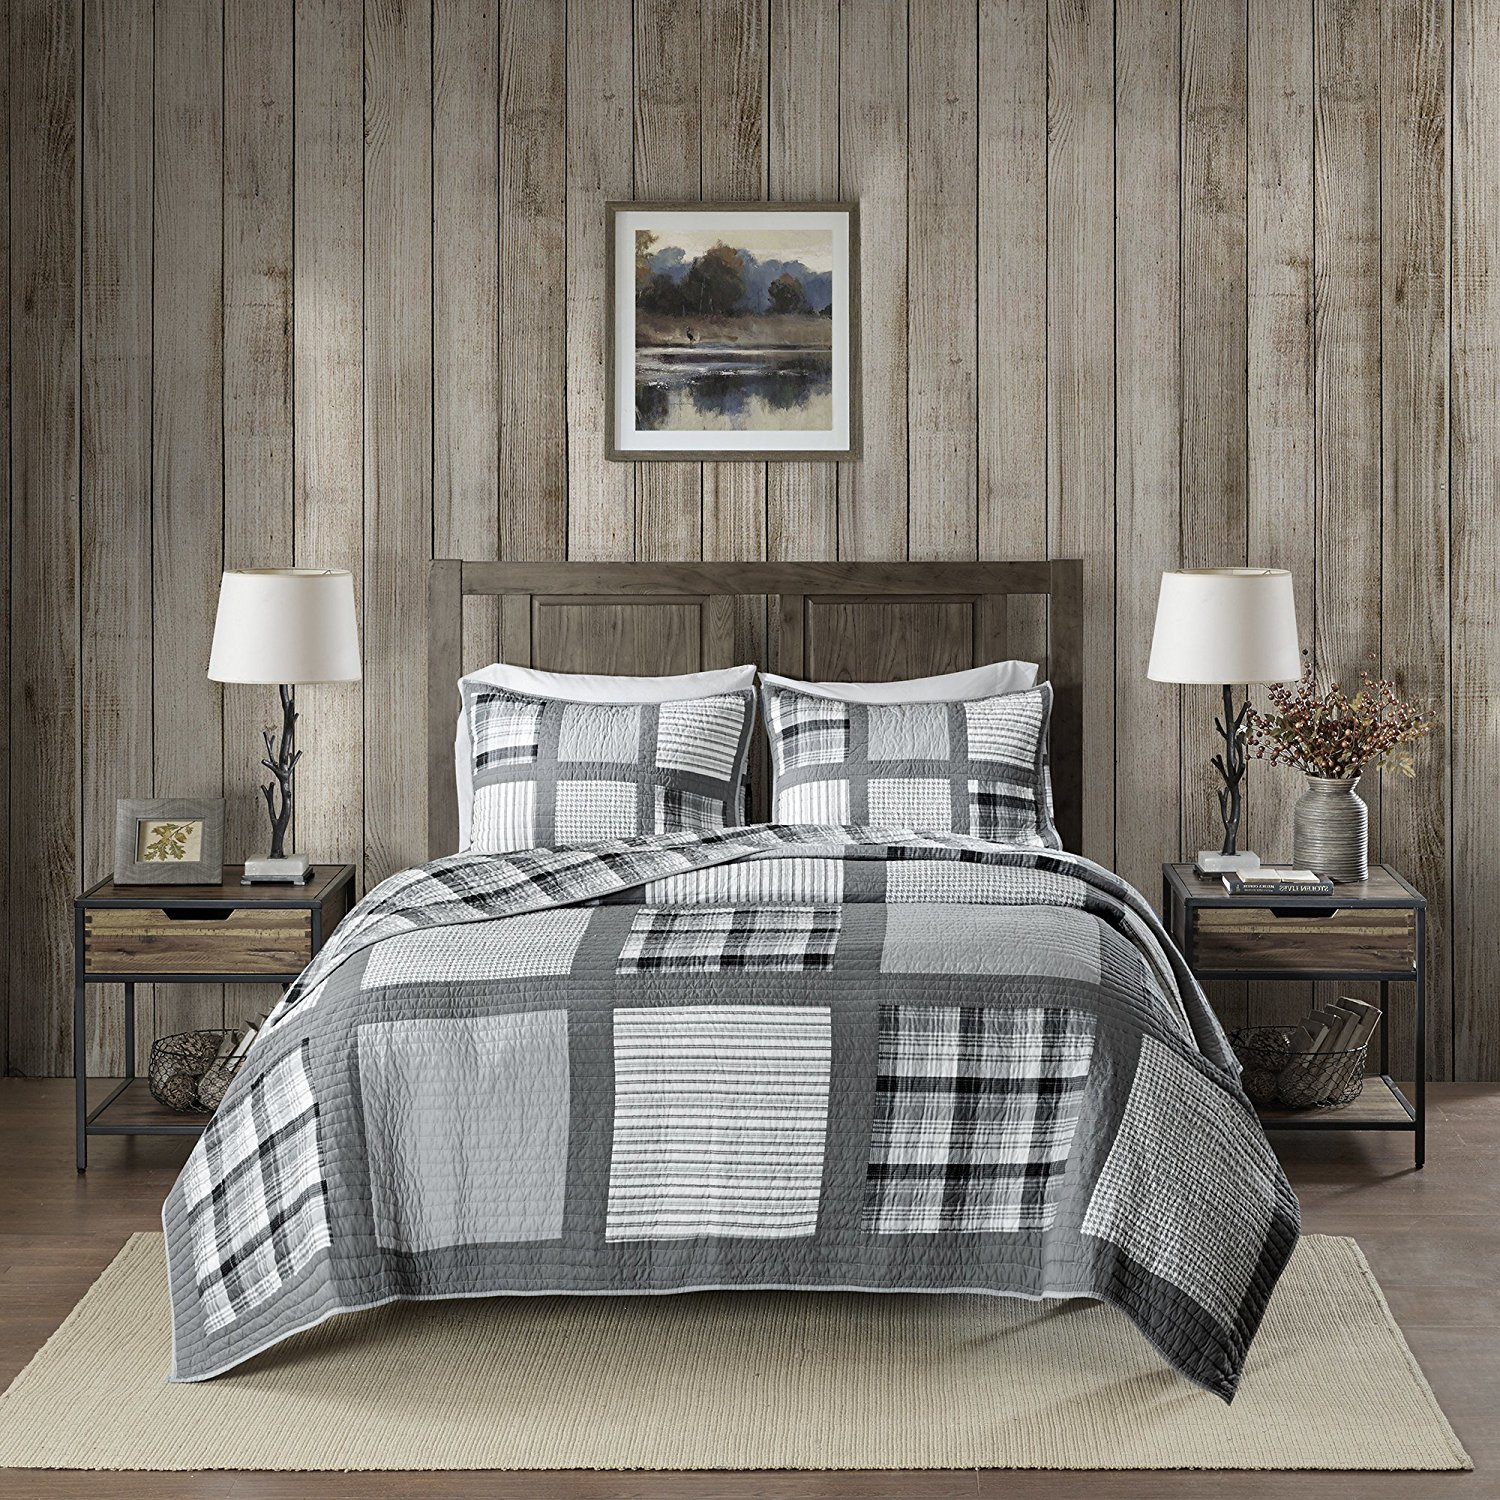 3 Piece Oversized Black Grey White King/ Cal King Quilt Set, Patchwork Pattern Bedding Tartan Plaid Themed Houndstooth Winter Cozy Stylish Cabin Lodge Cottage Warm Gray Trendy Stripe, Percale Cotton